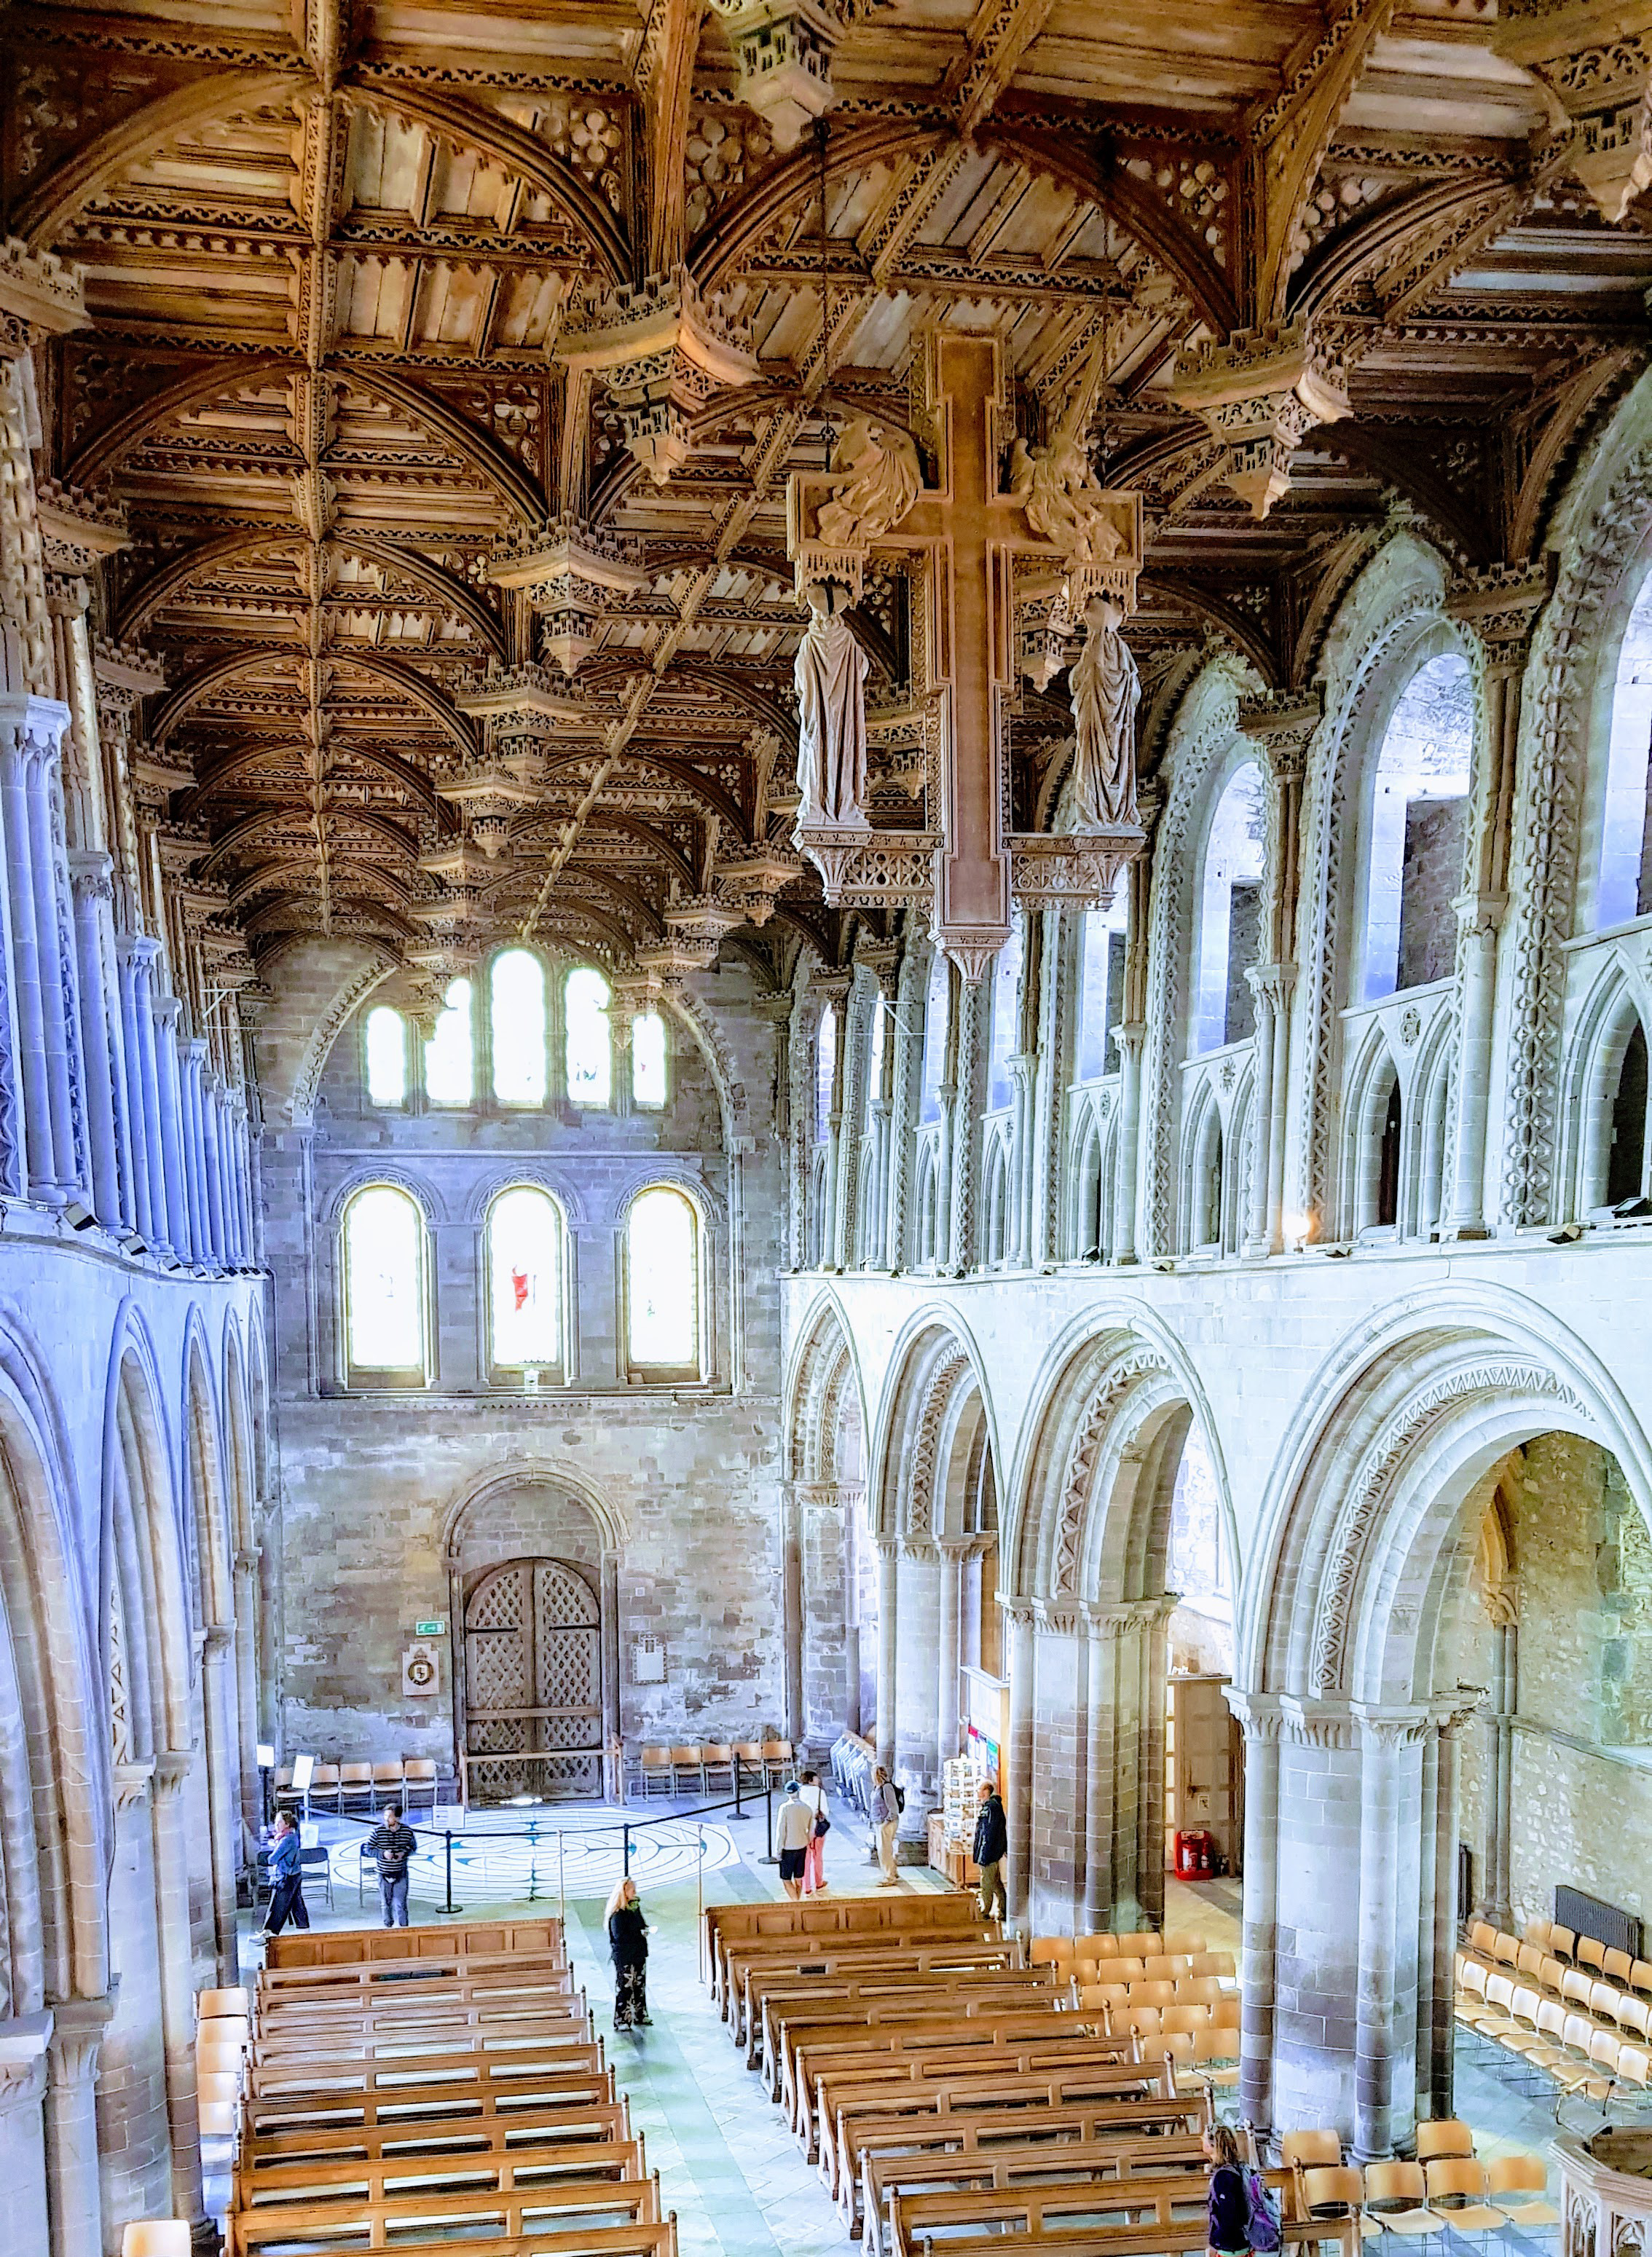 St David's Cathedral interior (Nave)